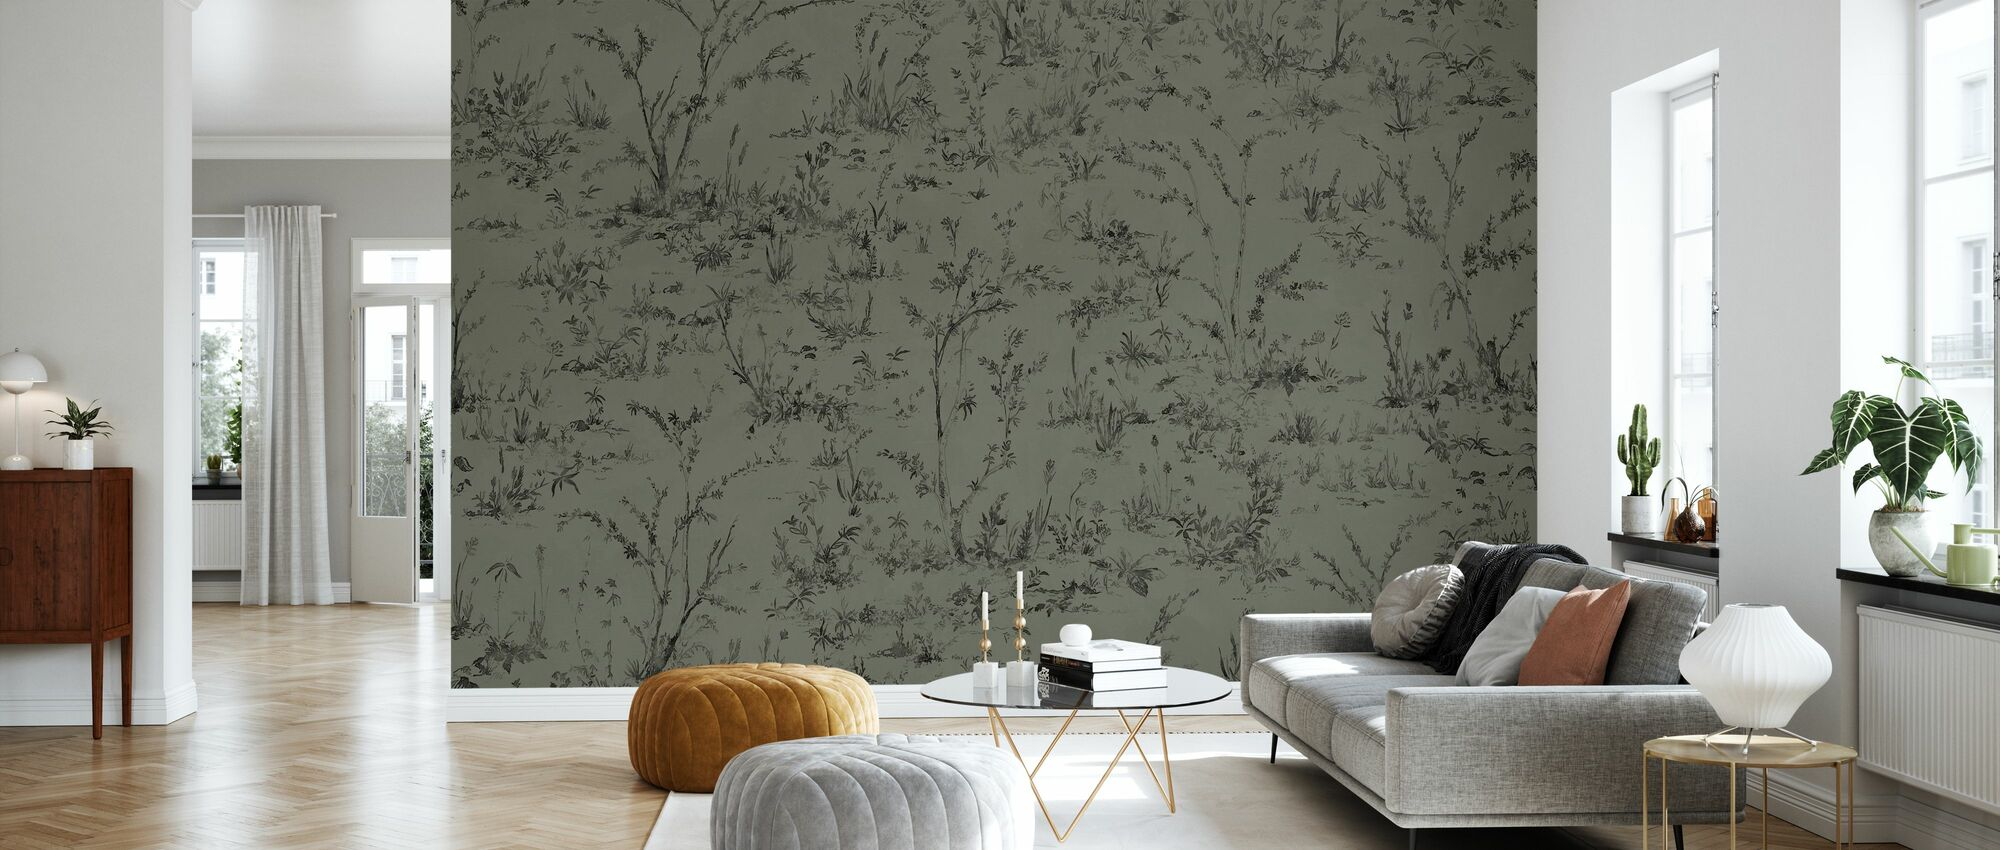 Wonder - Kaki - Wallpaper - Living Room